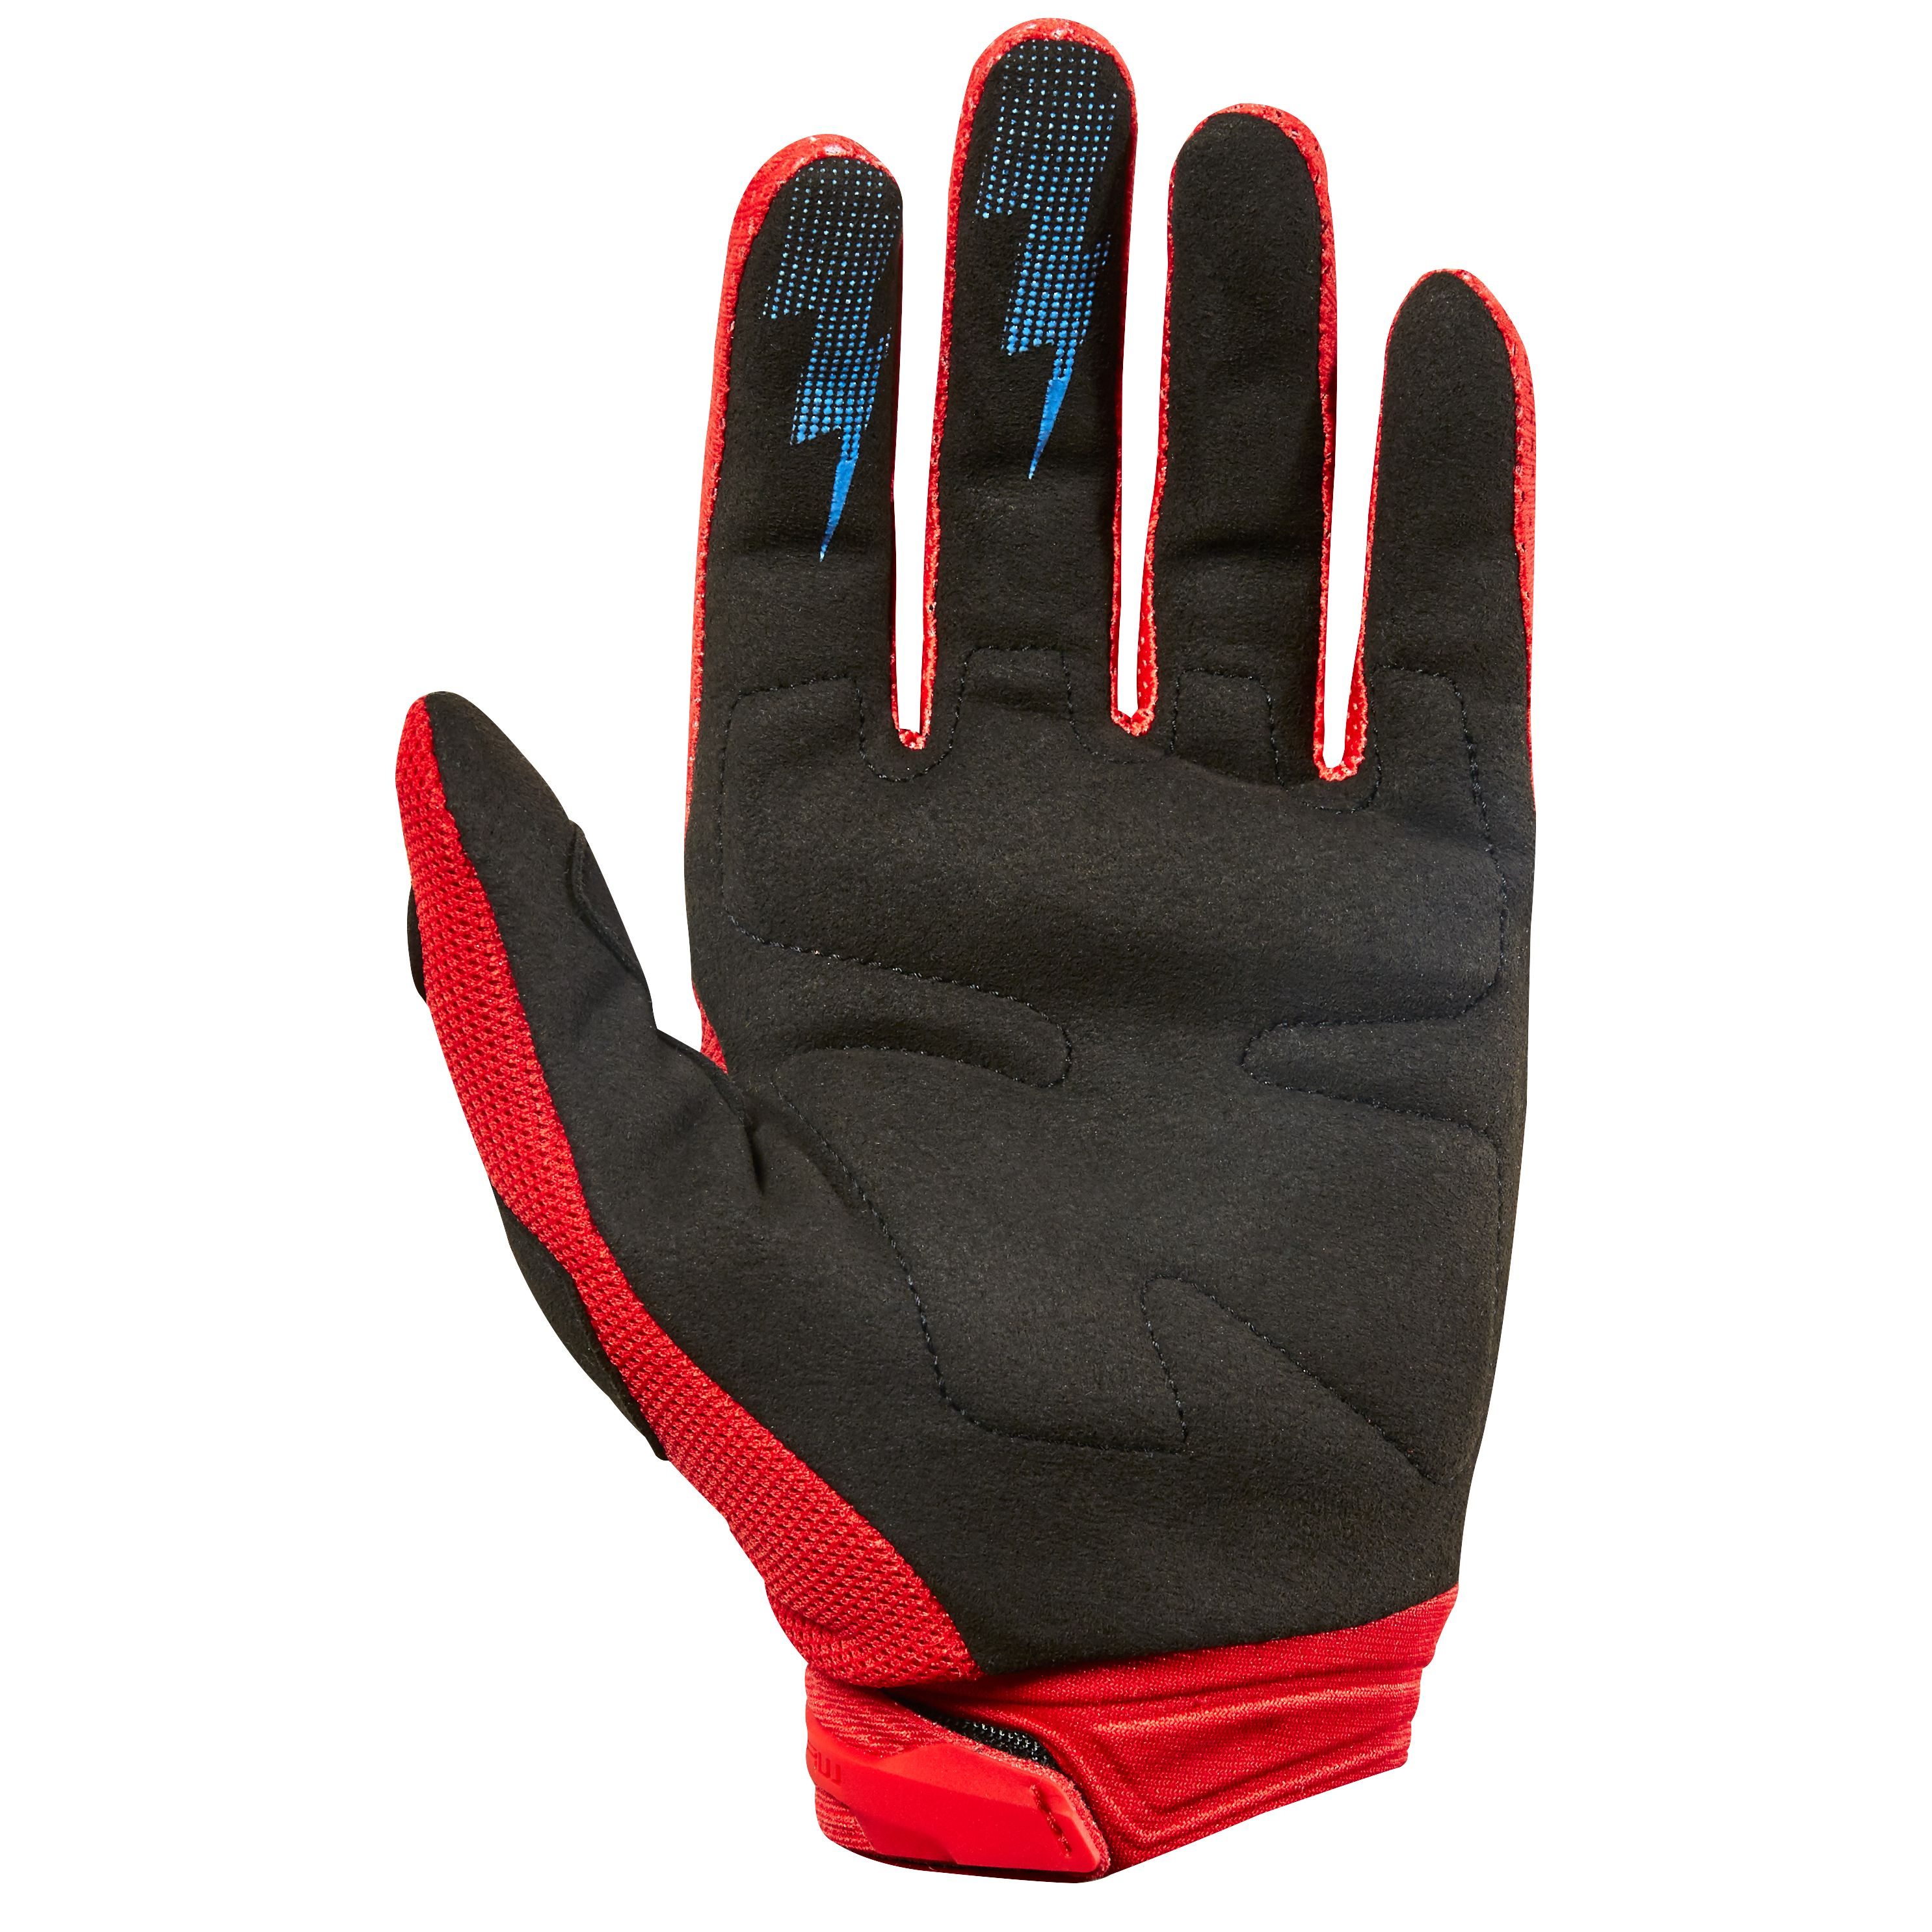 Gants cross Fox DIRTPAW RACE - ROUGE -  2018